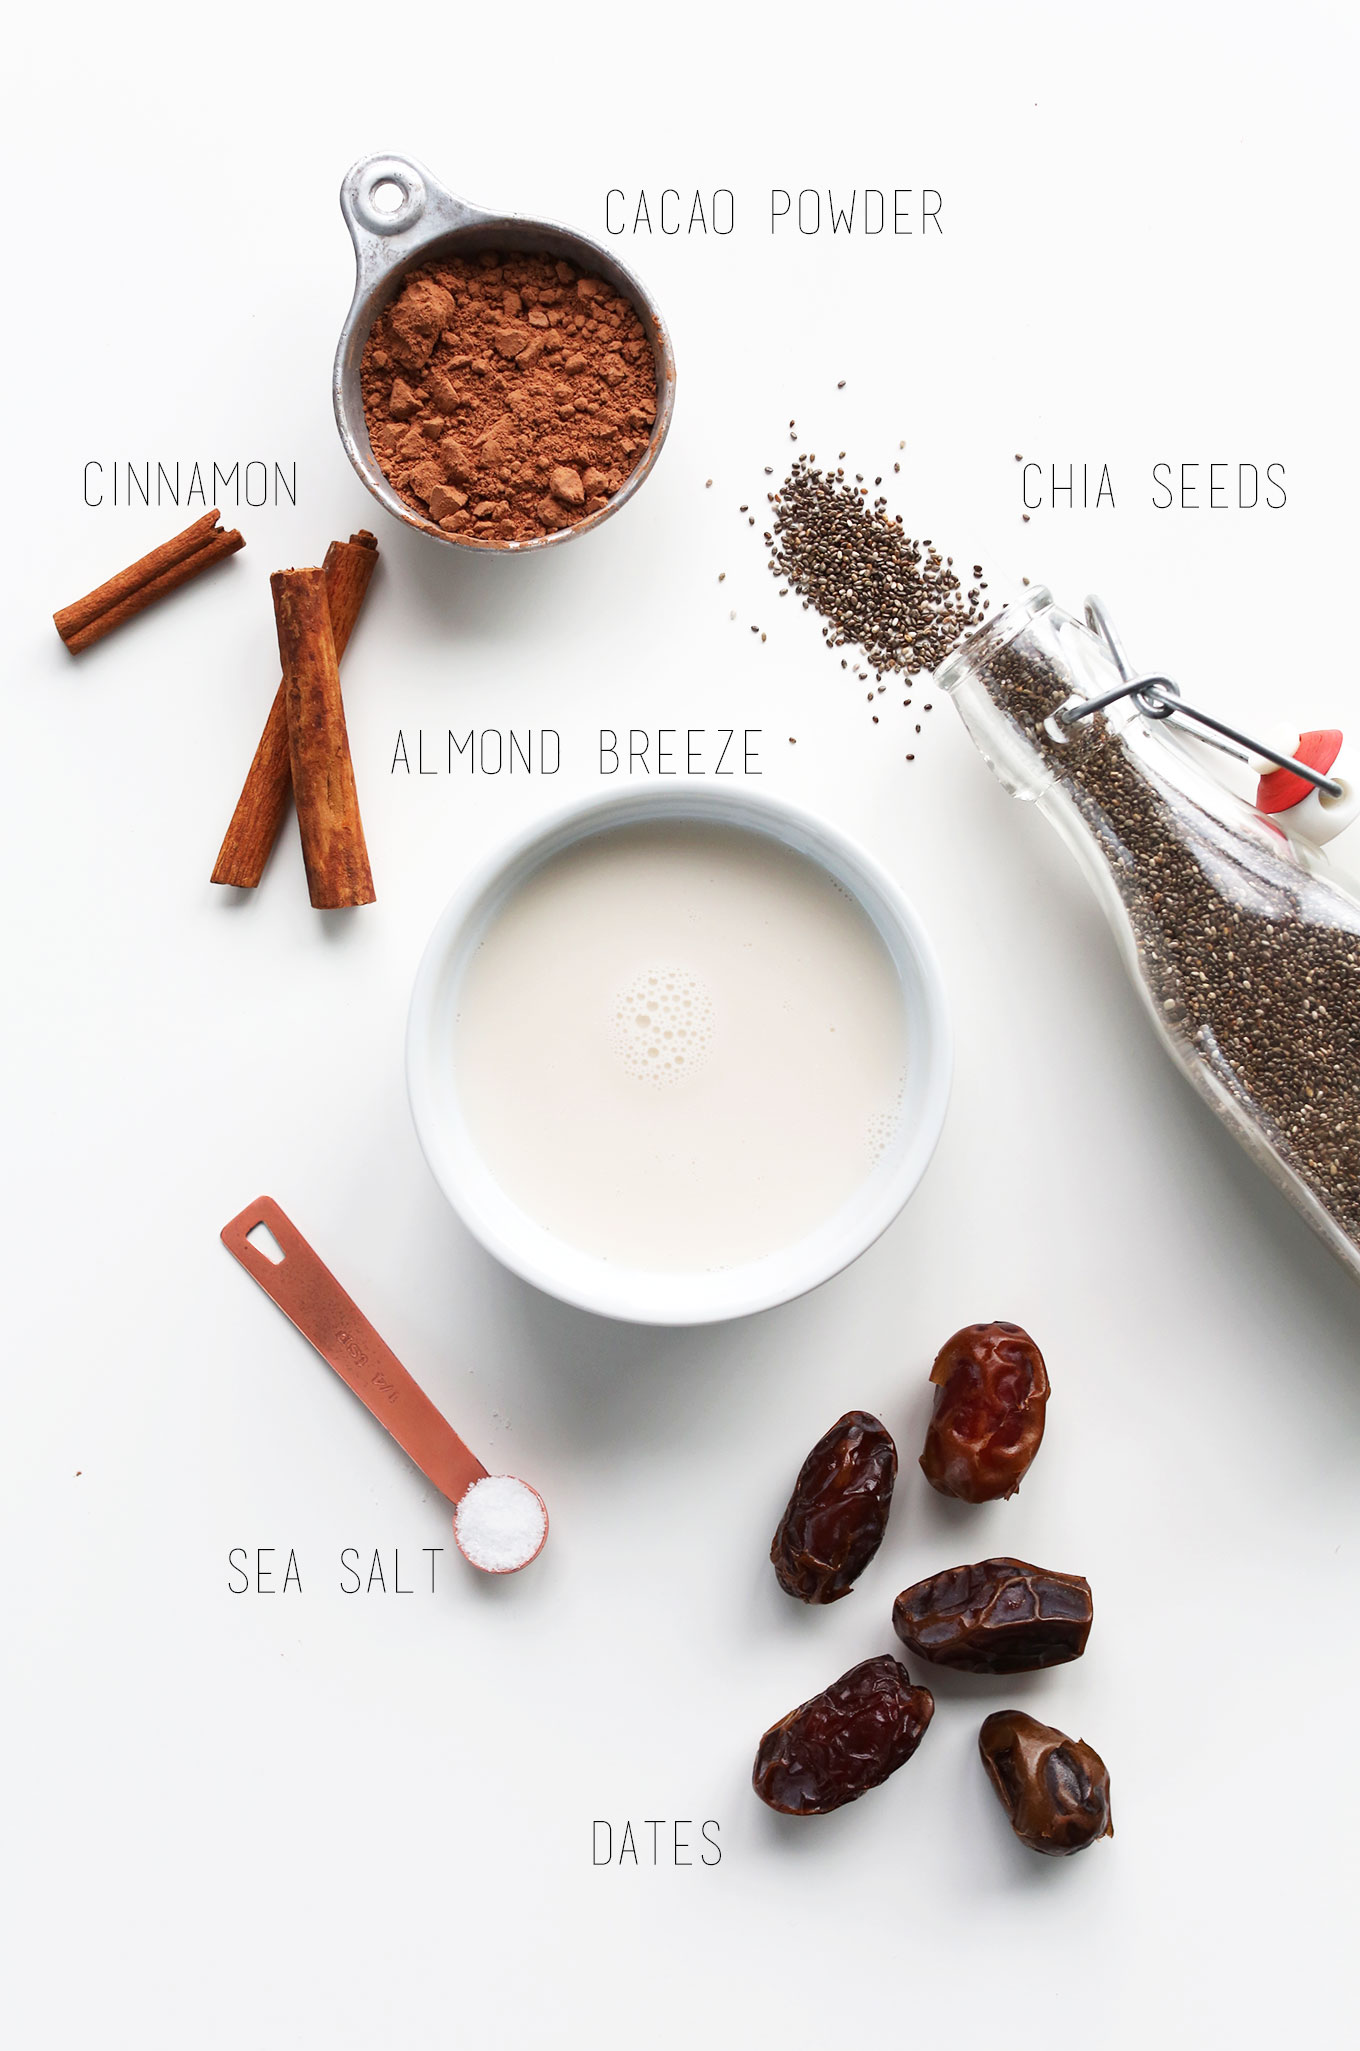 Cacao powder, cinnamon, almond milk, sea salt, dates, and chia seeds for making Chia Pudding